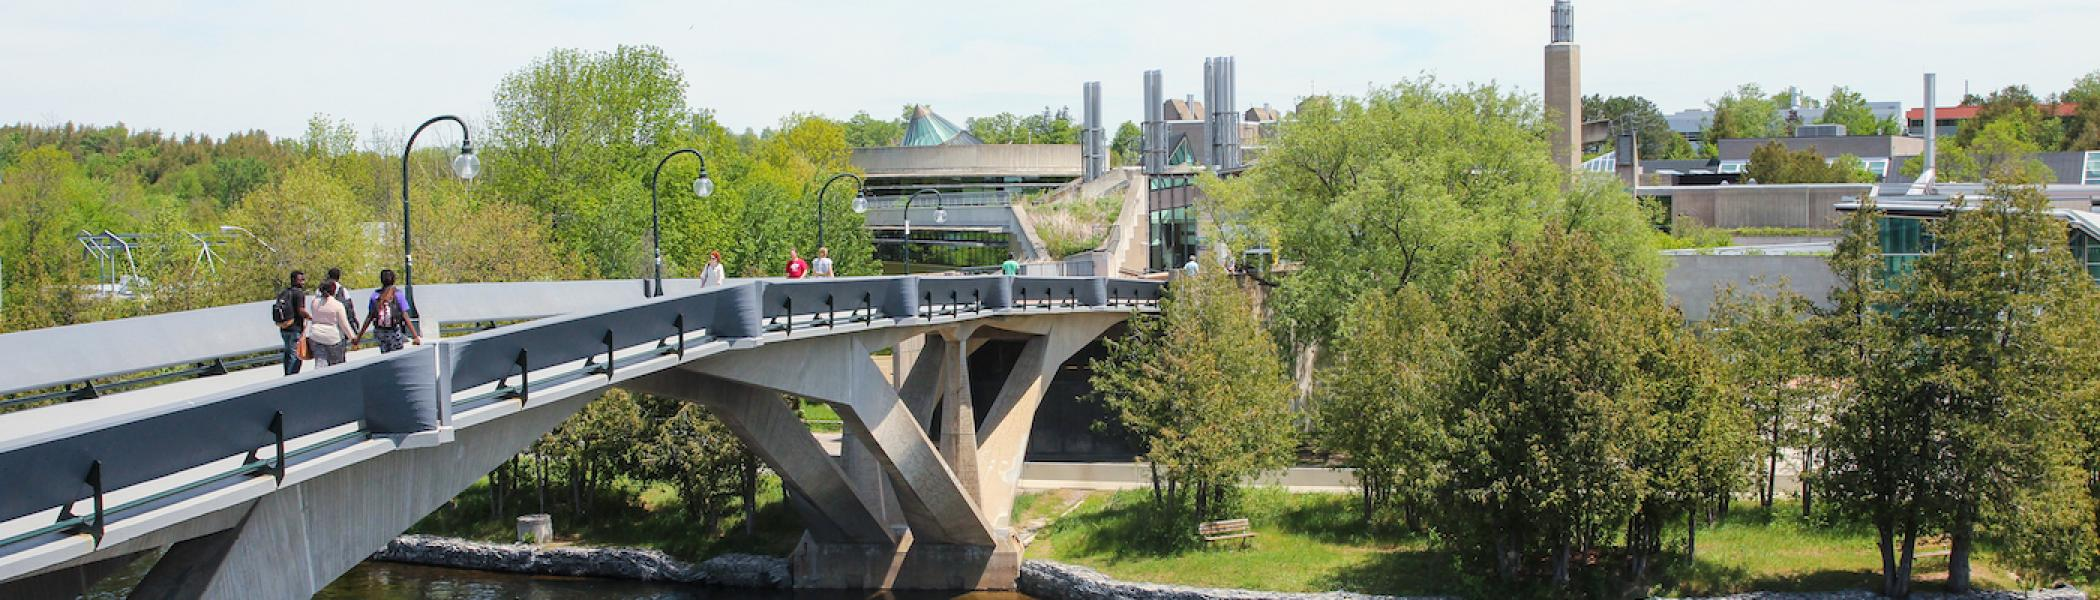 The Faryon bridge at Trent University on a sunny day with students walking across it and green trees around it